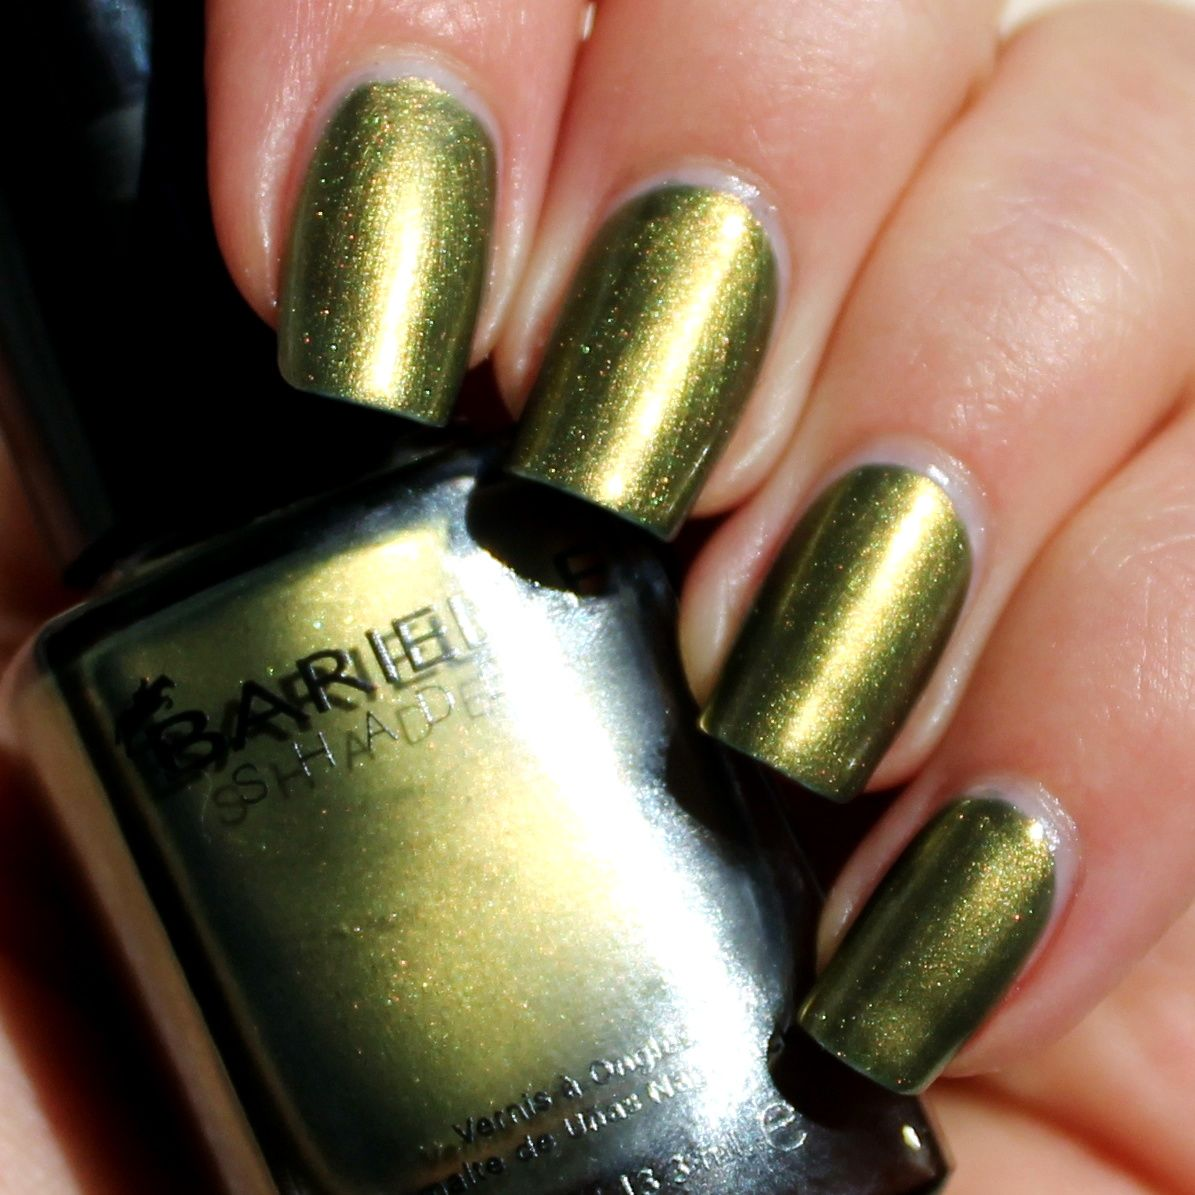 Essie Protein Base Coat / Barielle Holiday Madness / Poshe Top Coat